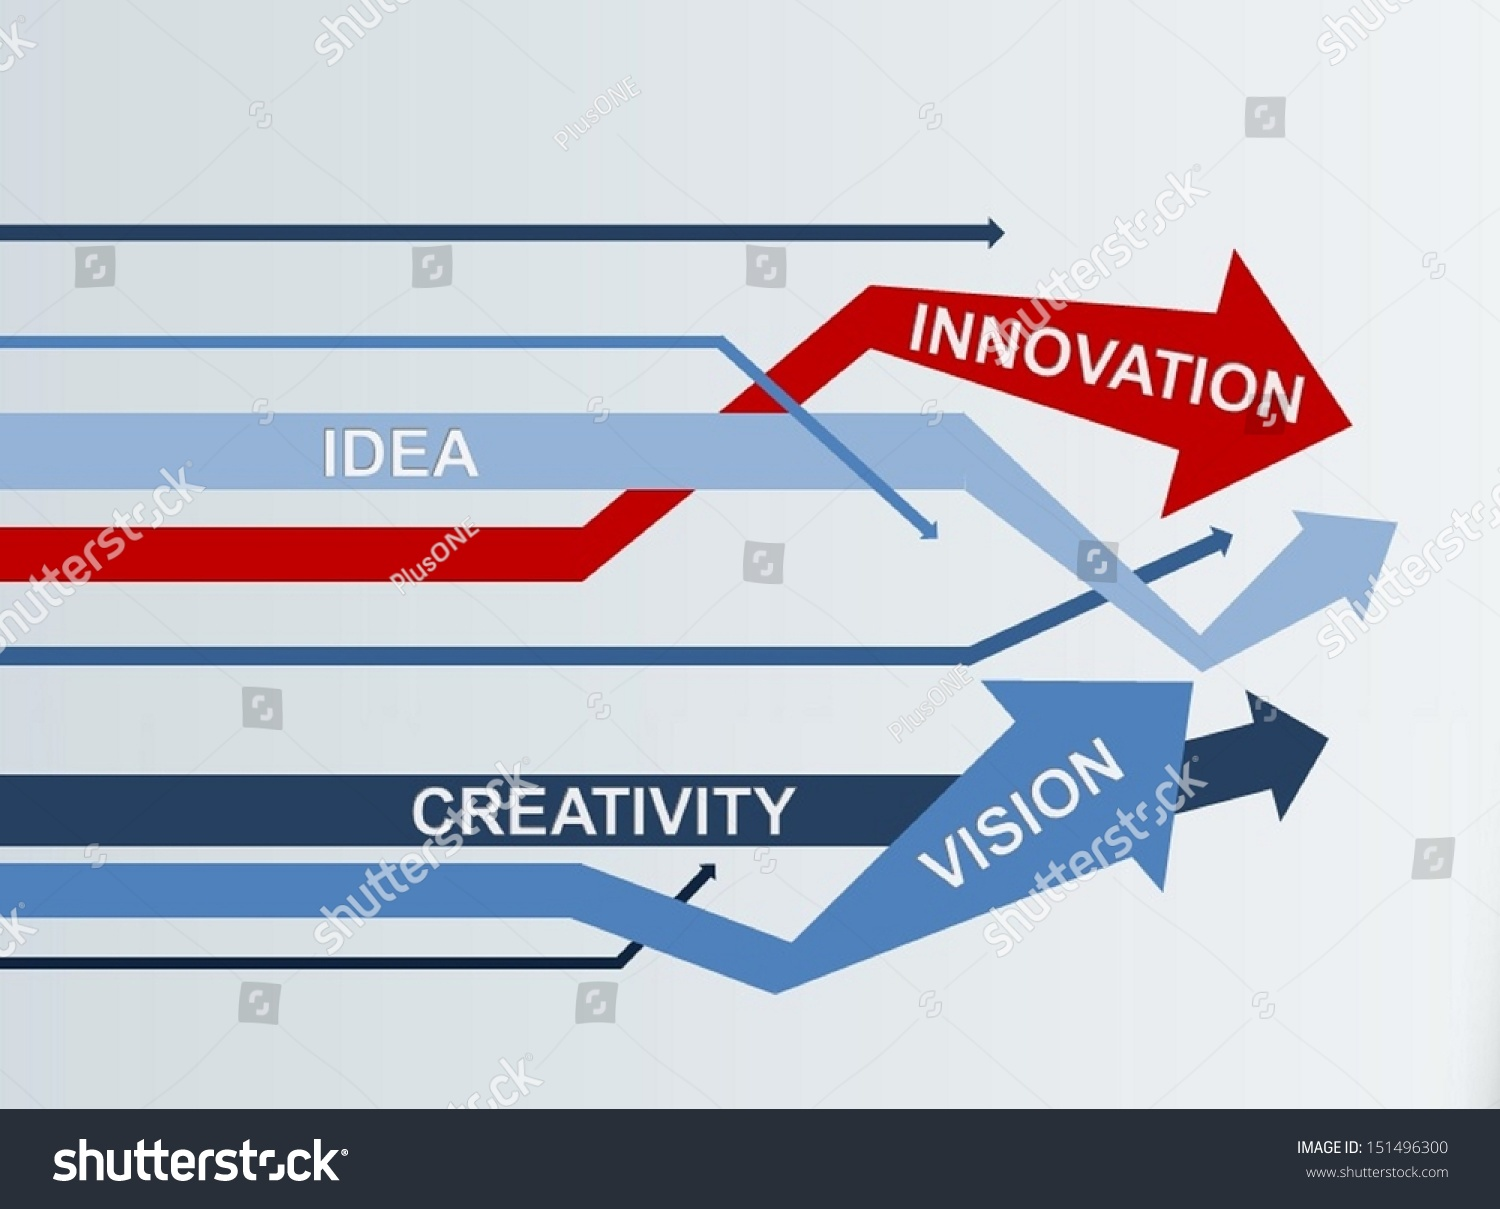 key concepts of creativity and innovation So, it can be said that innovation is not the same thing as invention, as these are two different concepts both the activities requires huge capital investment in the research process further, the invention is when something new or novel to the world is discovered, while innovation is about introducing an effective way of using, producing or .